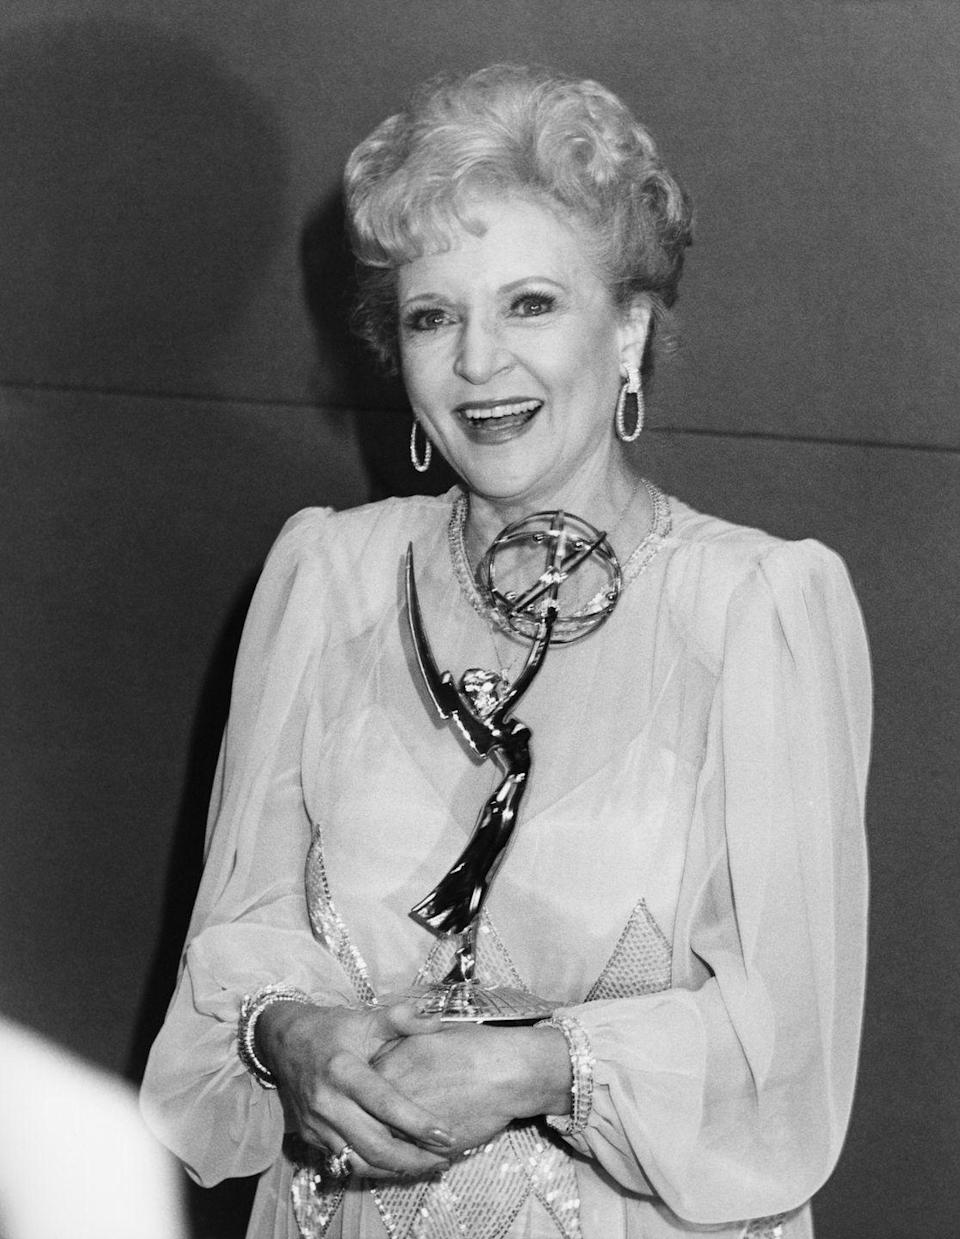 <p>In 1986, White won the Emmy for Outstanding Actress in a Comedy Series for her role on <em>The Golden Girls</em>. During the rest of the show's run, she was nominated in that category every year. <br></p>